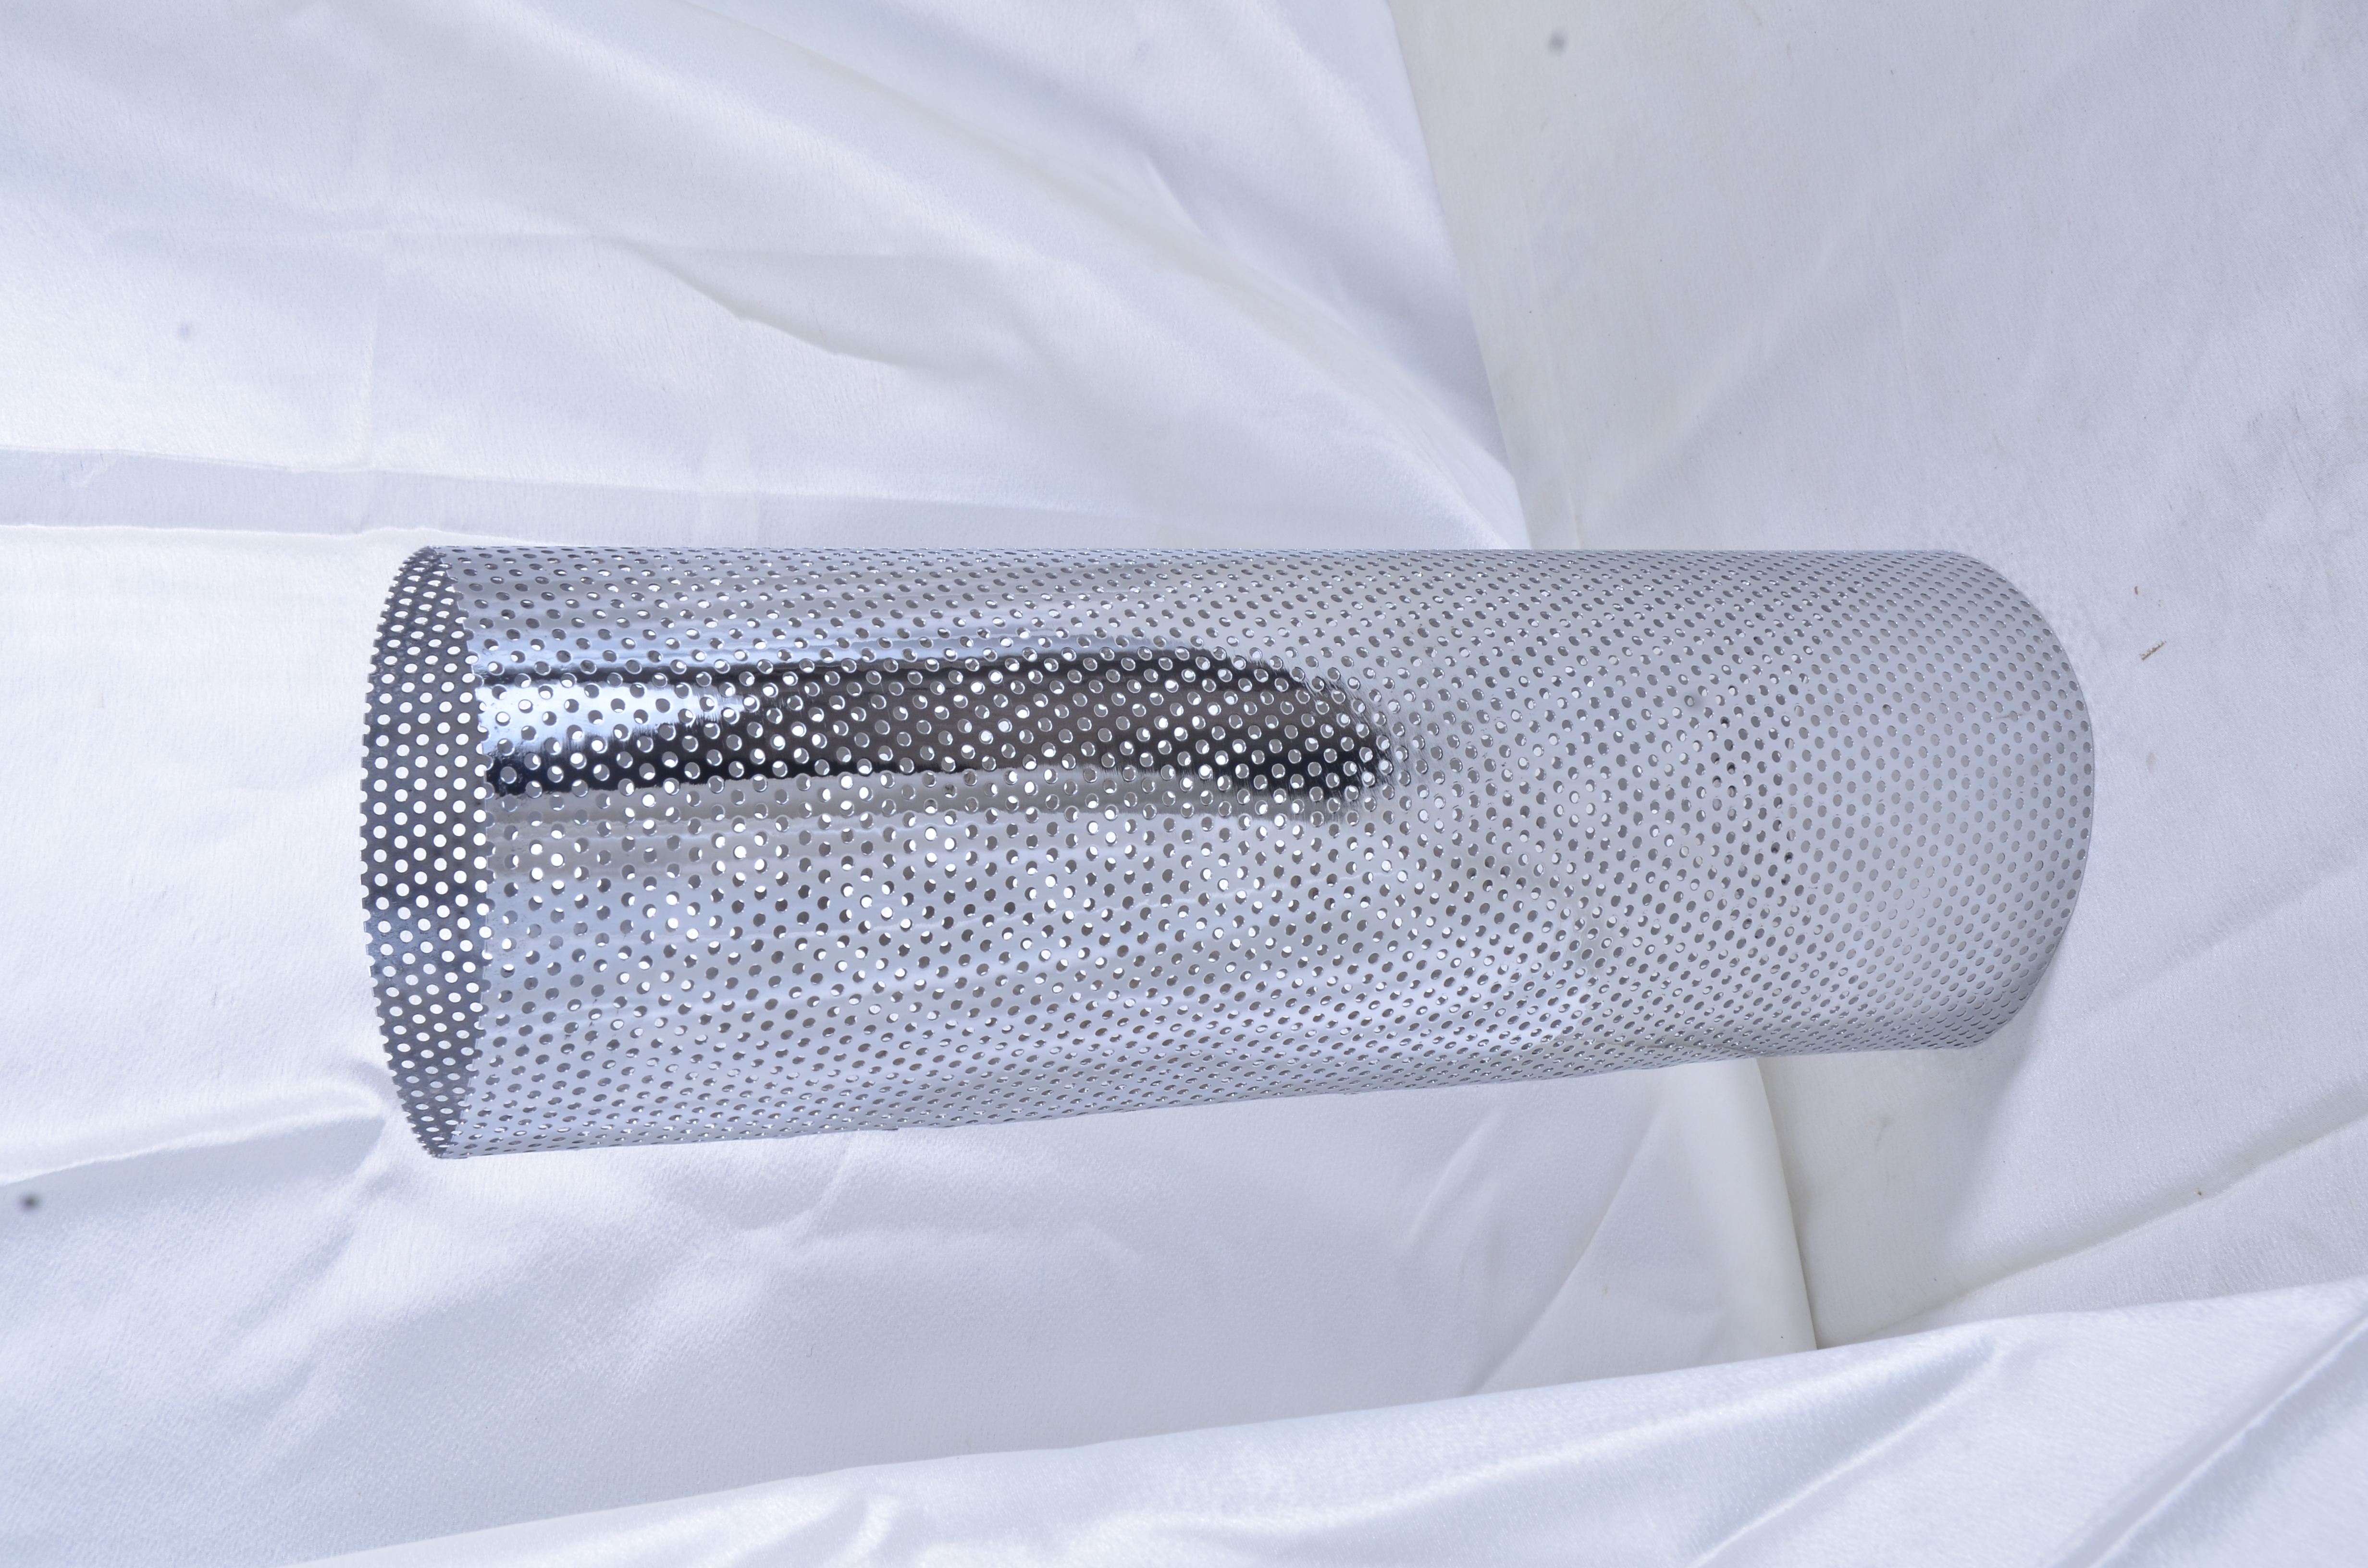 Perforated Type Metal Sheet